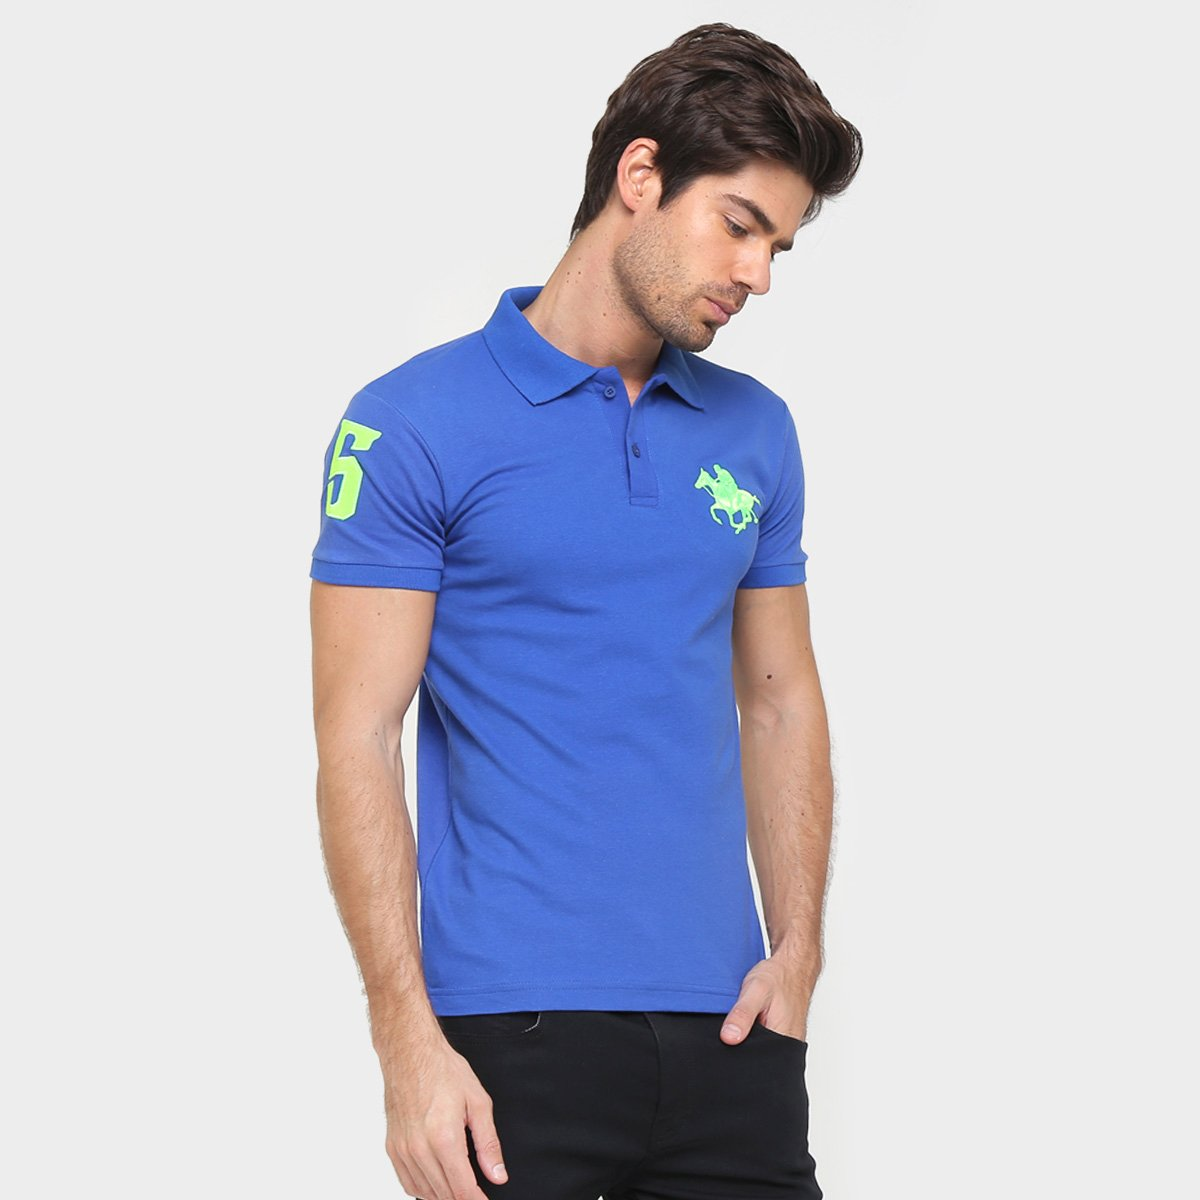 Camisa Polo Rg 518 Piquet Bordado Contraste Color 3f537bdce08e5